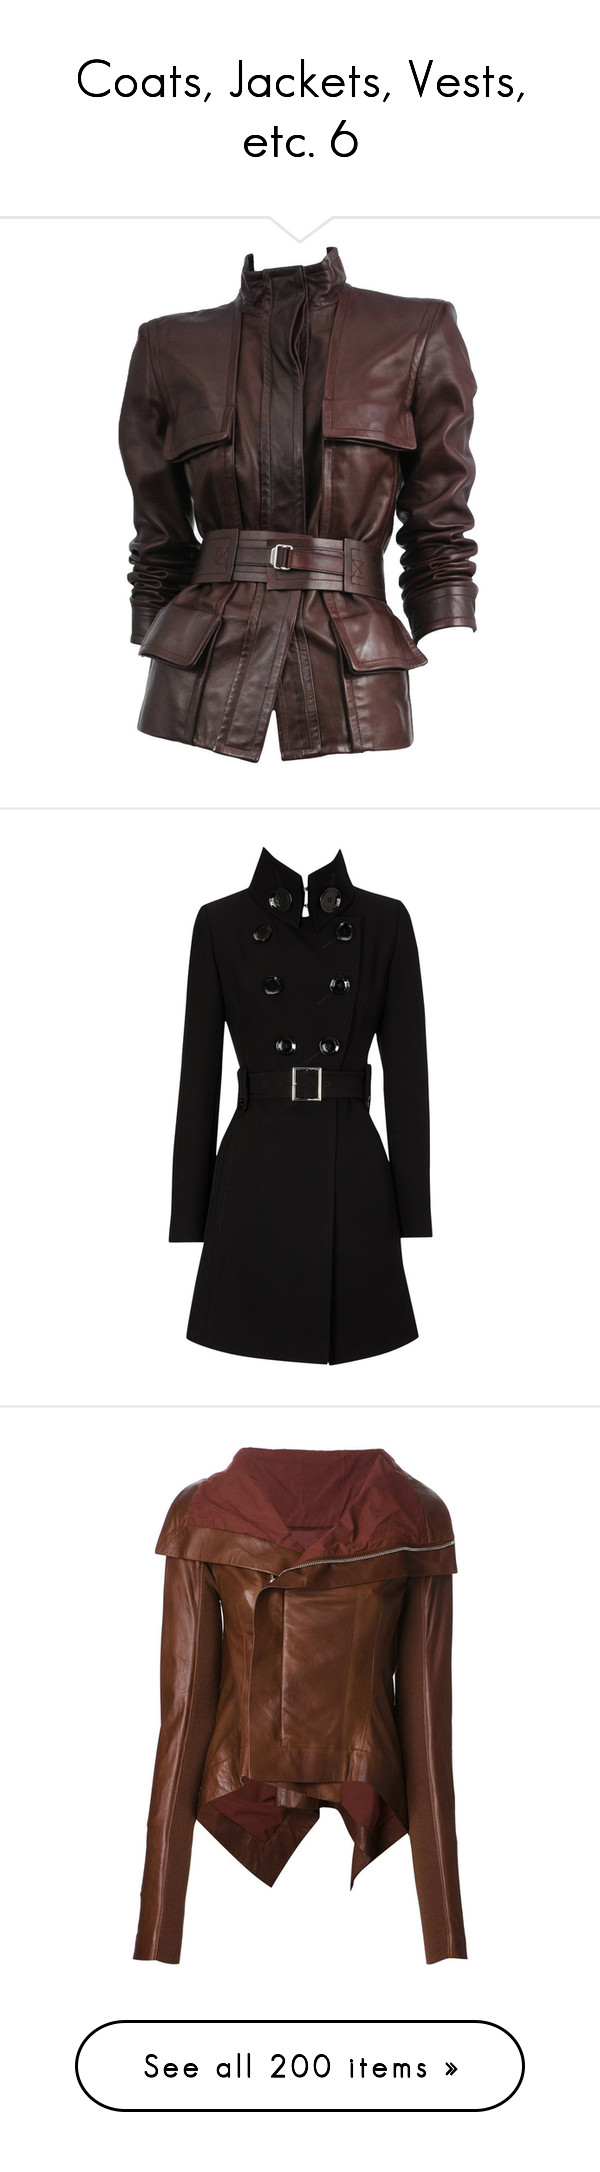 """""""Coats, Jackets, Vests, etc. 6"""" by just-call-me-chuck ❤ liked on Polyvore featuring outerwear, jackets, coats, coats & jackets, multiple, belted jacket, jacket with belt, genuine leather jacket, brown jacket and 100 leather jacket"""